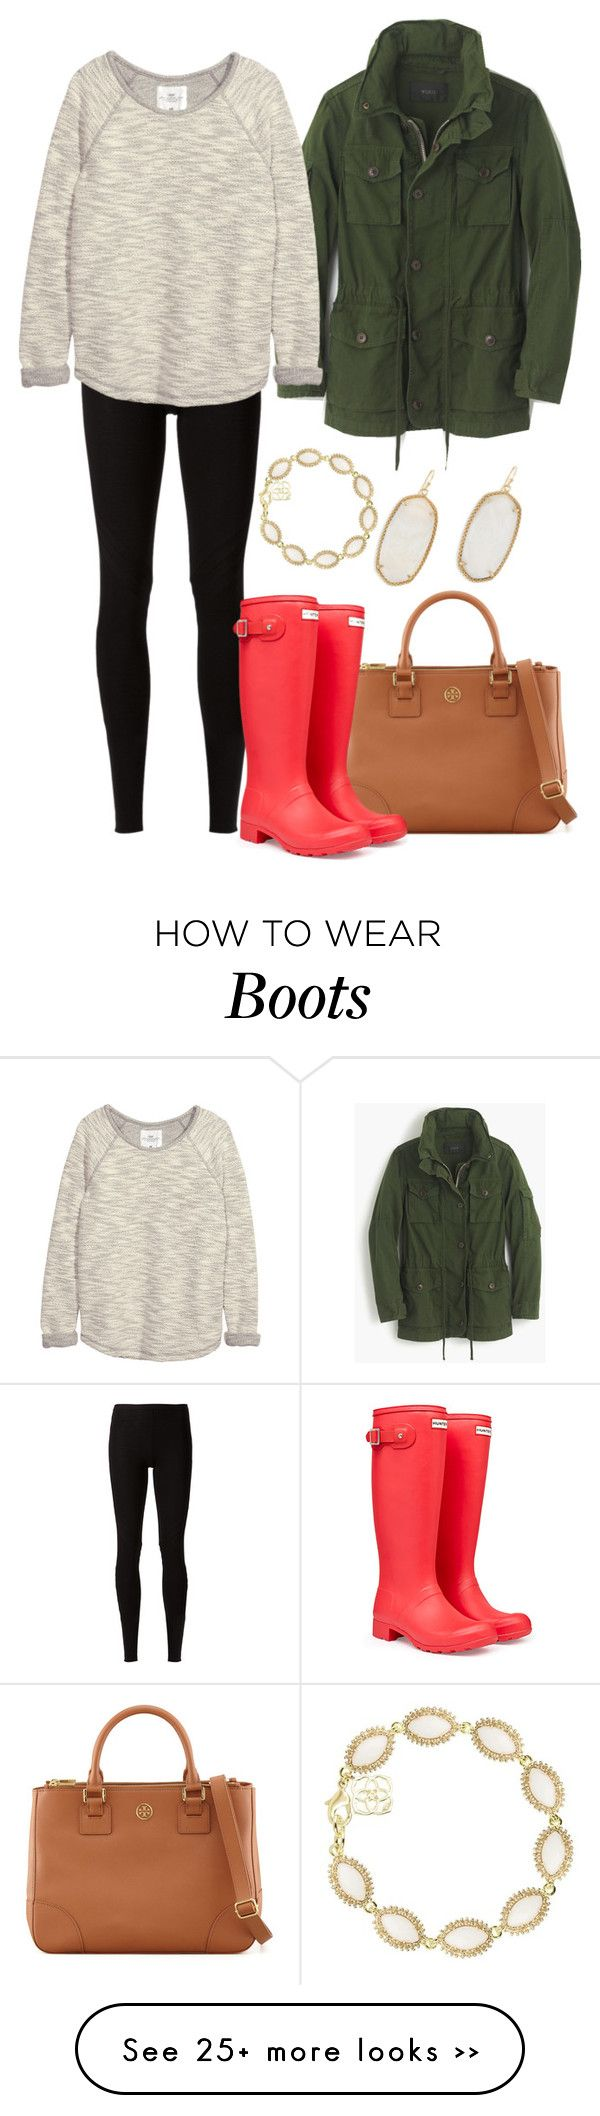 """Olive Green Jacket Pt. 2"" by vineyard-vines-love on Polyvore featuring Rick Owens Lilies, Tory Burch, J.Crew, Hunter, H&M and Kendra Scott"